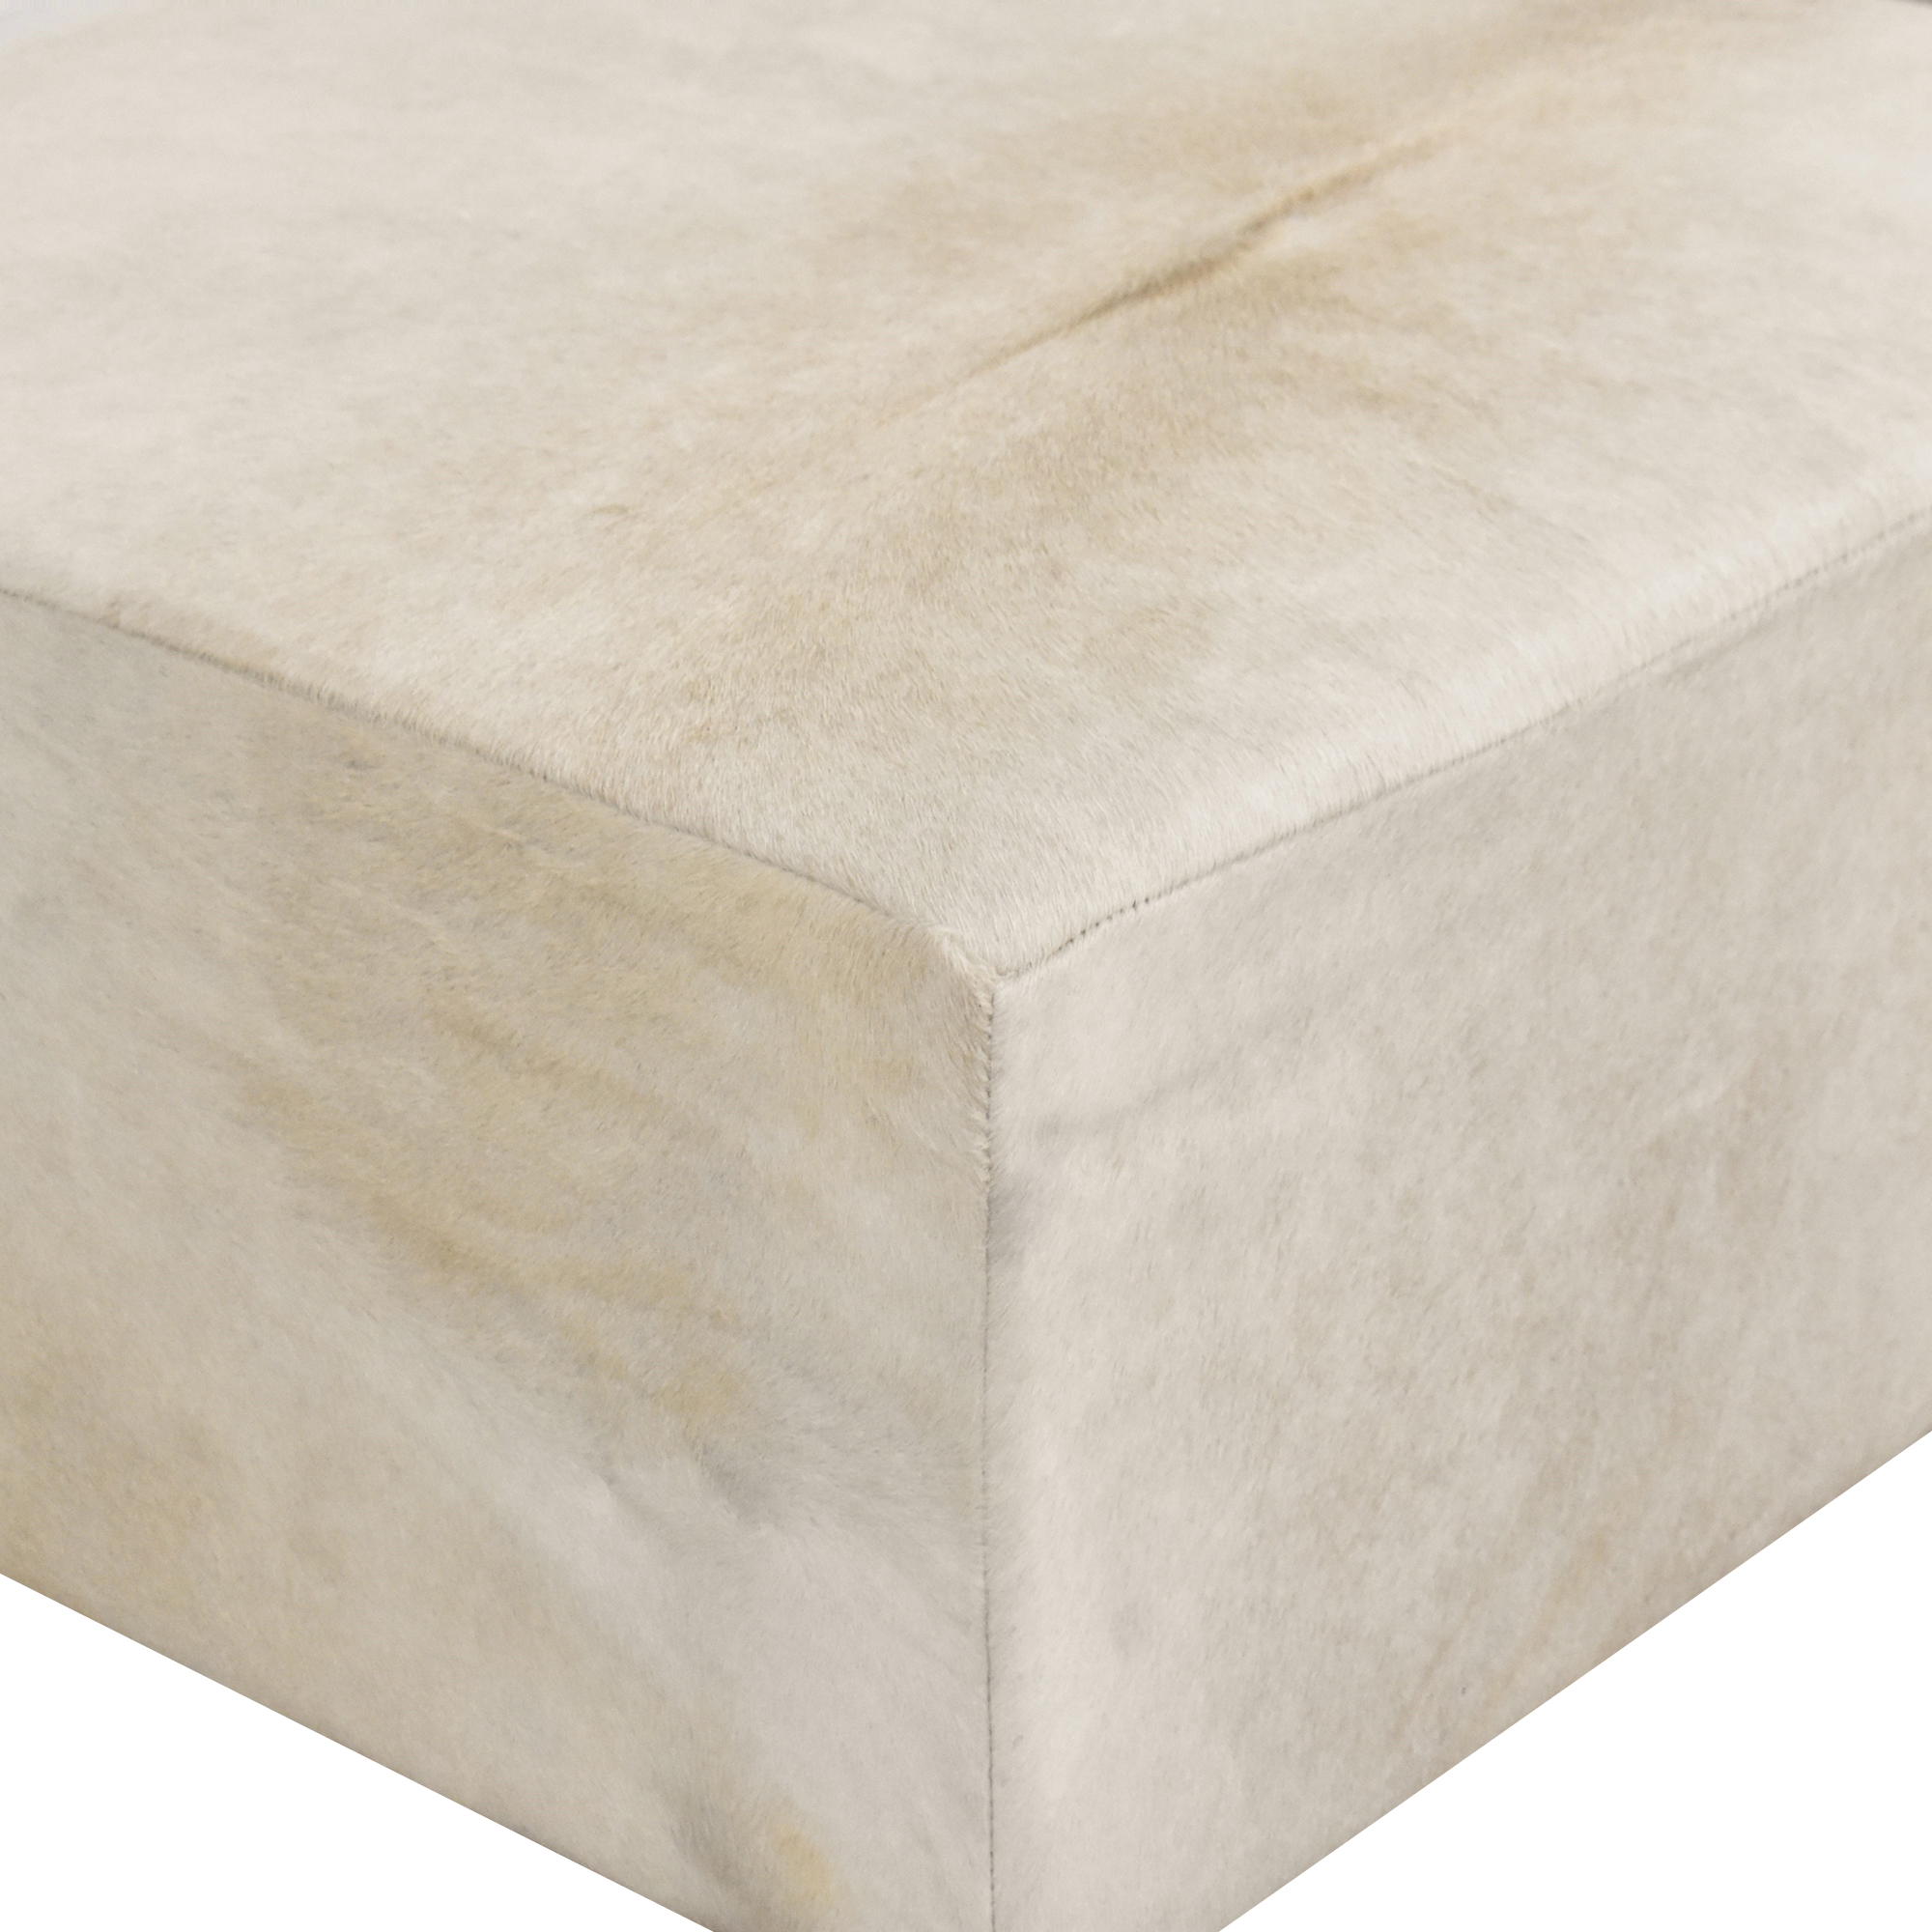 Restoration Hardware Restoration Hardware Cooper Hair-On-Hide Square Ottoman beige and brown